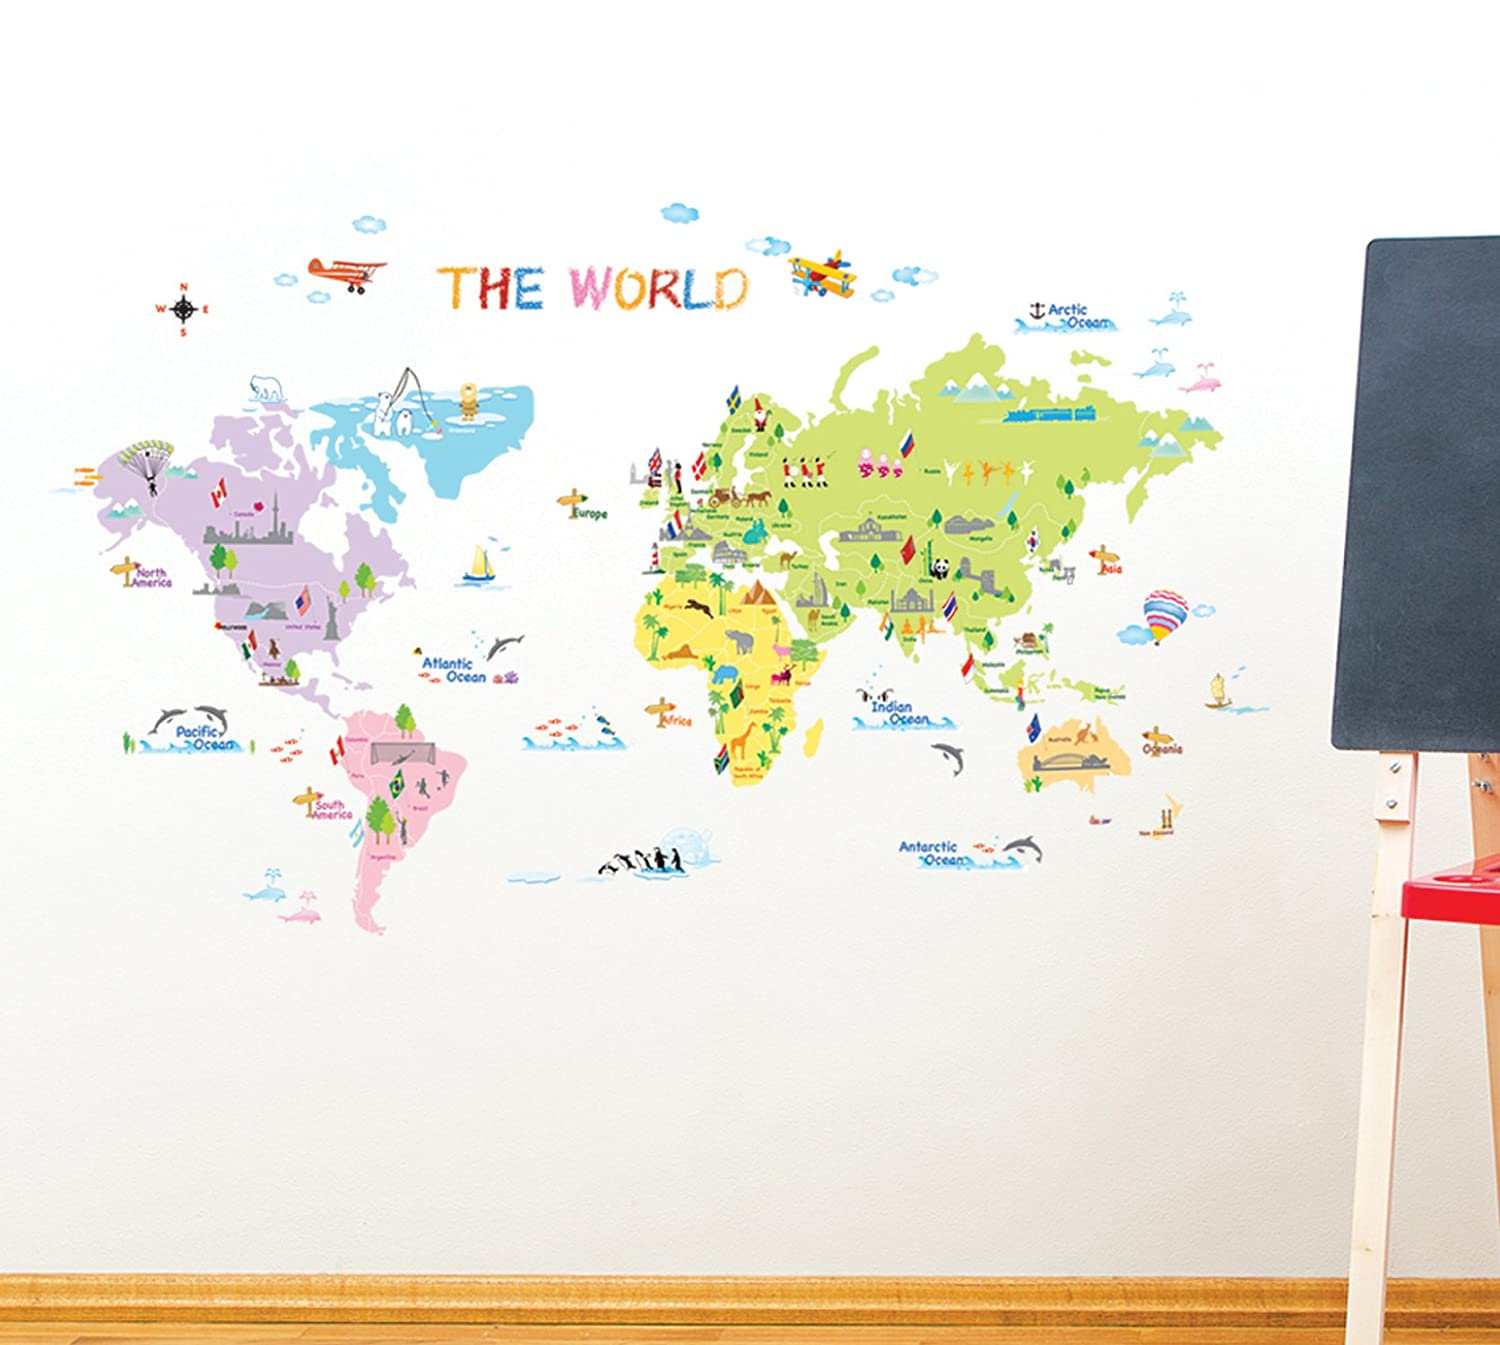 Decowalldp 08200colourful world maphome art decoration wall decowalldp 08200colourful world maphome art decoration wall stickerswall decalswall transferswall tattooswall sticker amazon kitchen home gumiabroncs Images